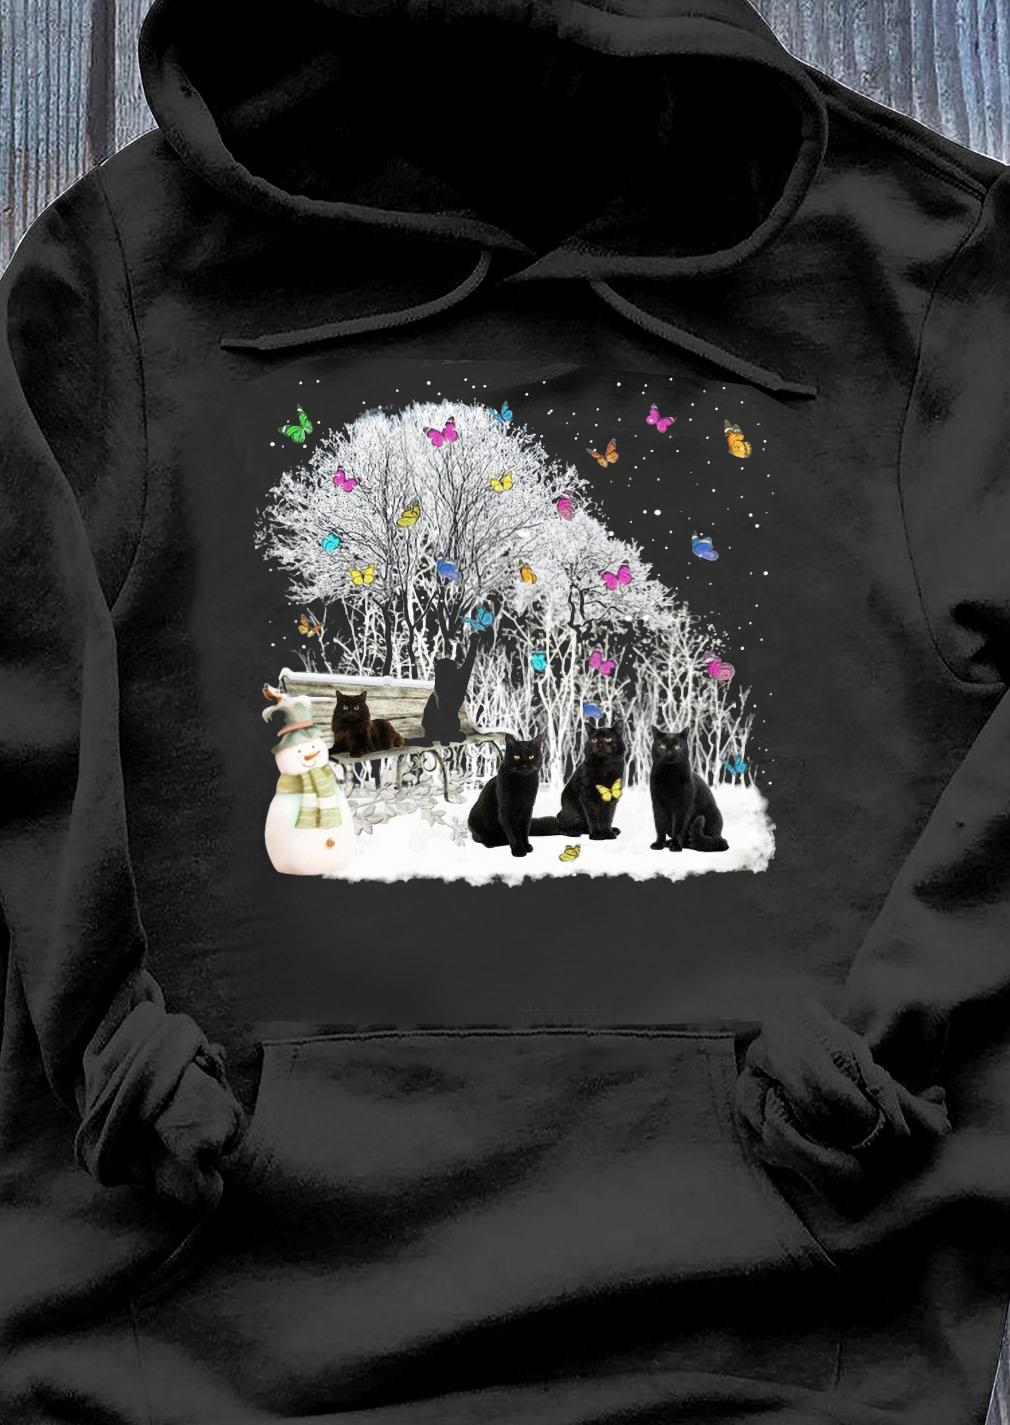 Cute Cat Playing In The Snow-Gift For Cat Lover Christmas Shirt Hoodie